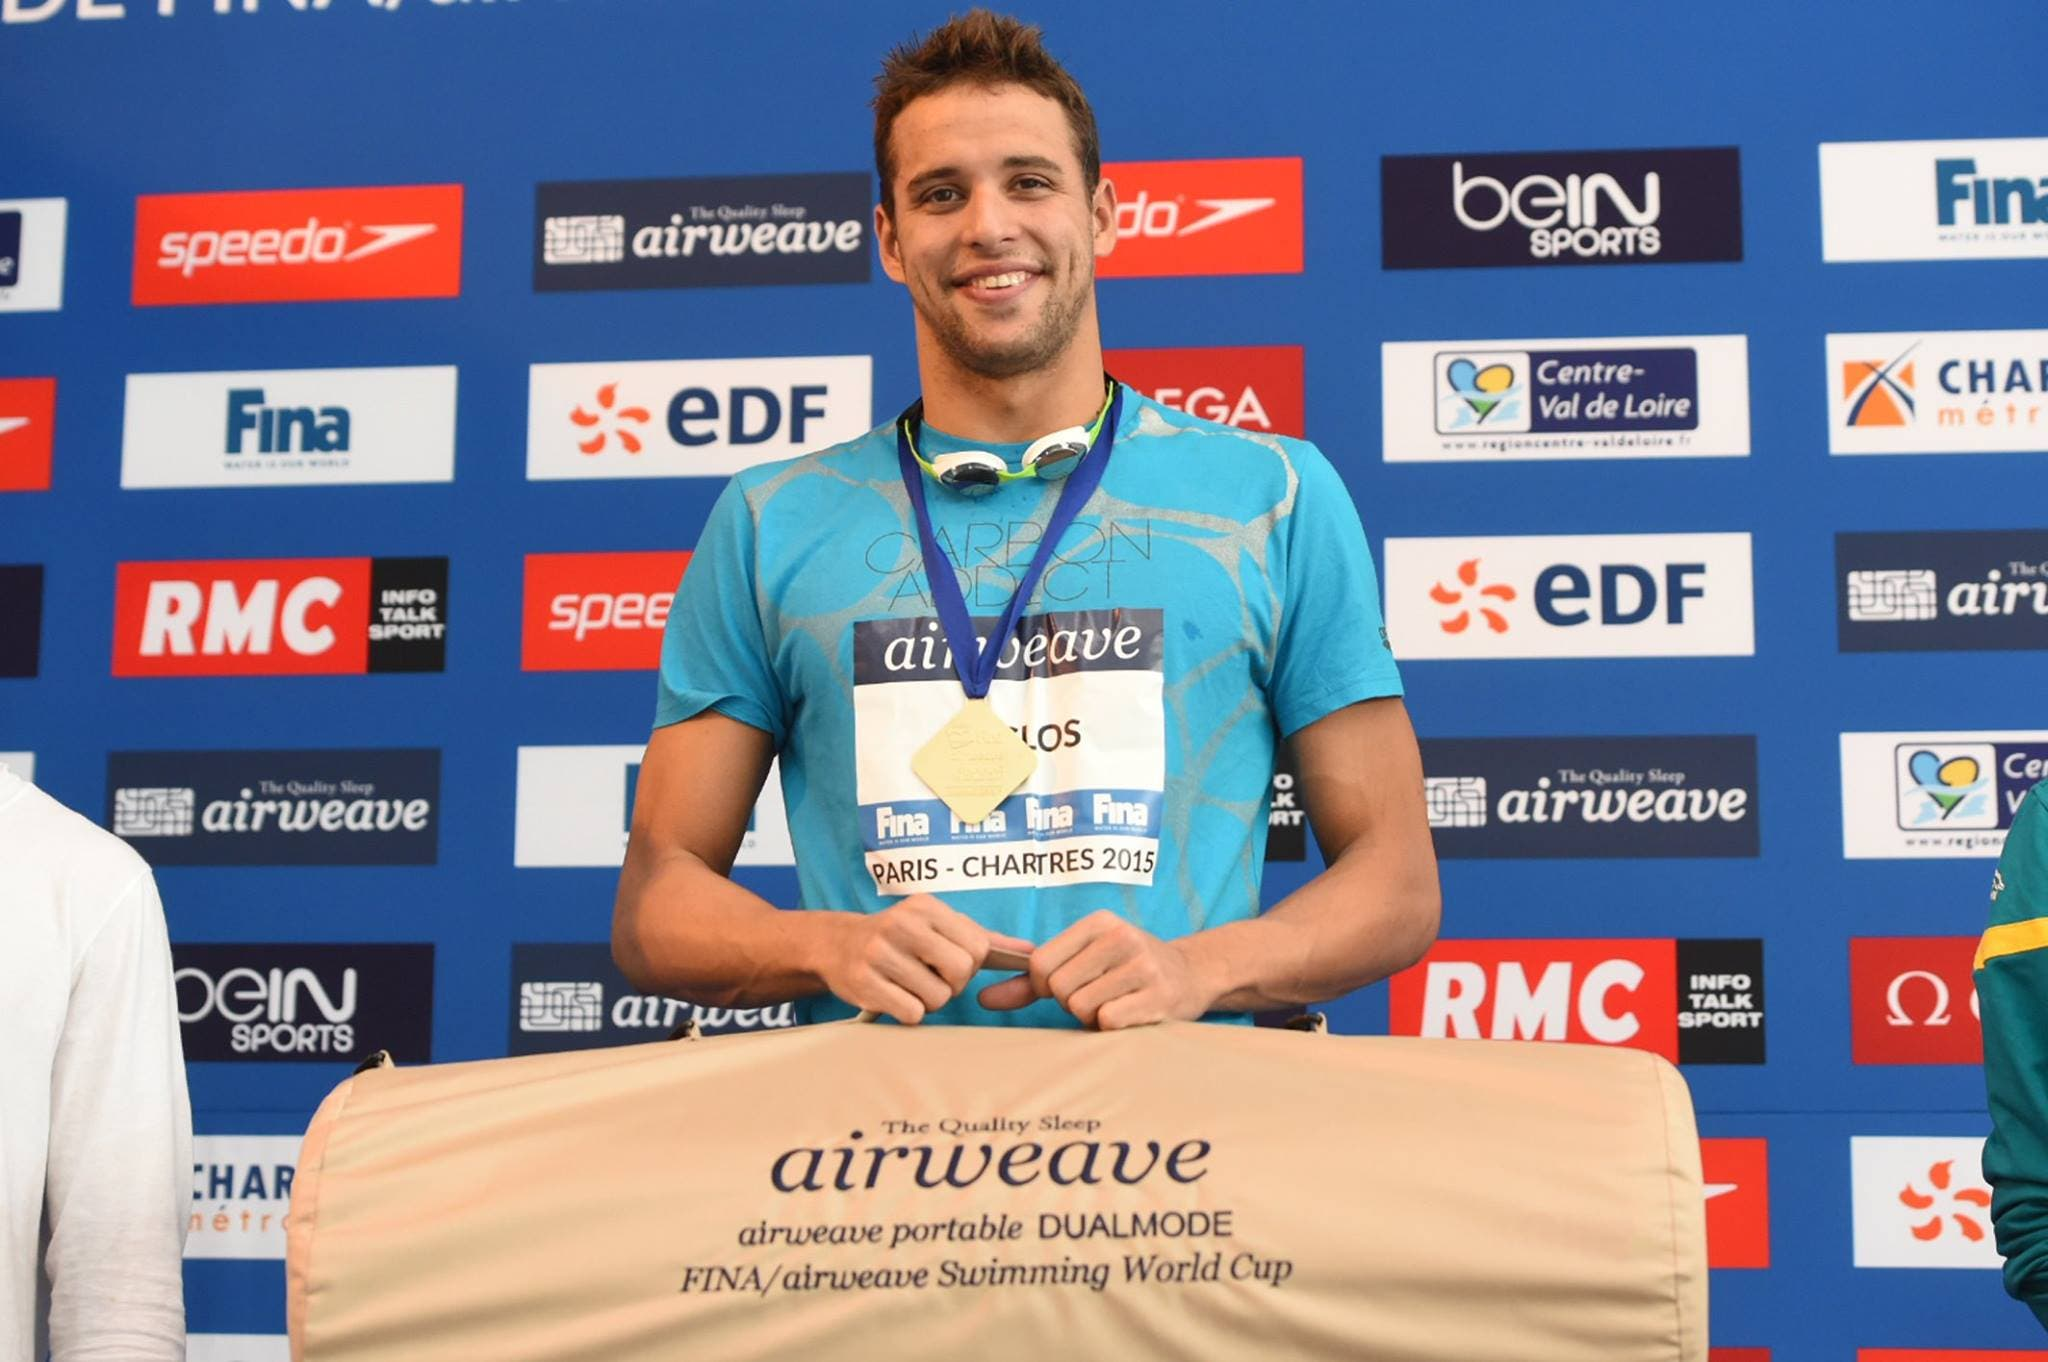 Chad le Clos in Paris